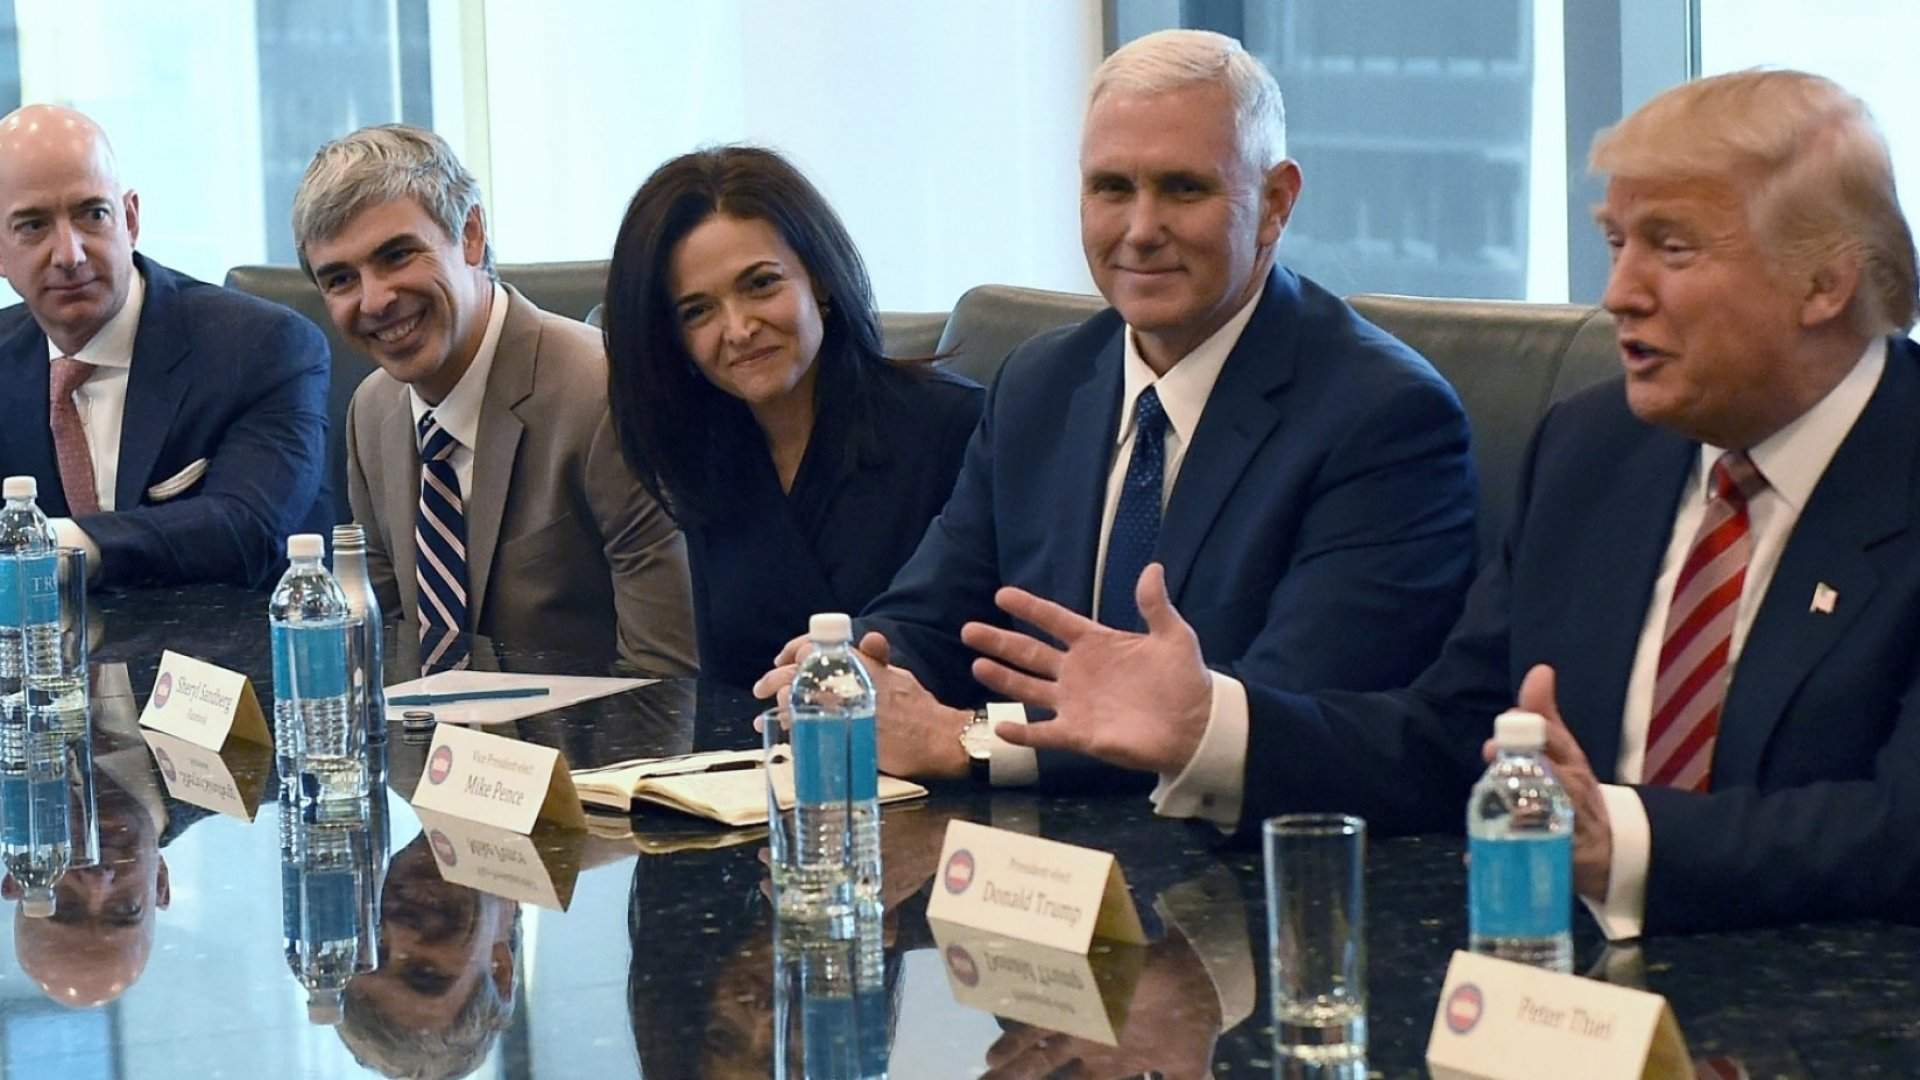 Amazon's chief Jeff Bezos (left), Larry Page of Alphabet, Facebook COO Sheryl Sandberg, Vice President-elect Mike Pence and President-elect Donald Trump at Trump Tower December 14, 2016.